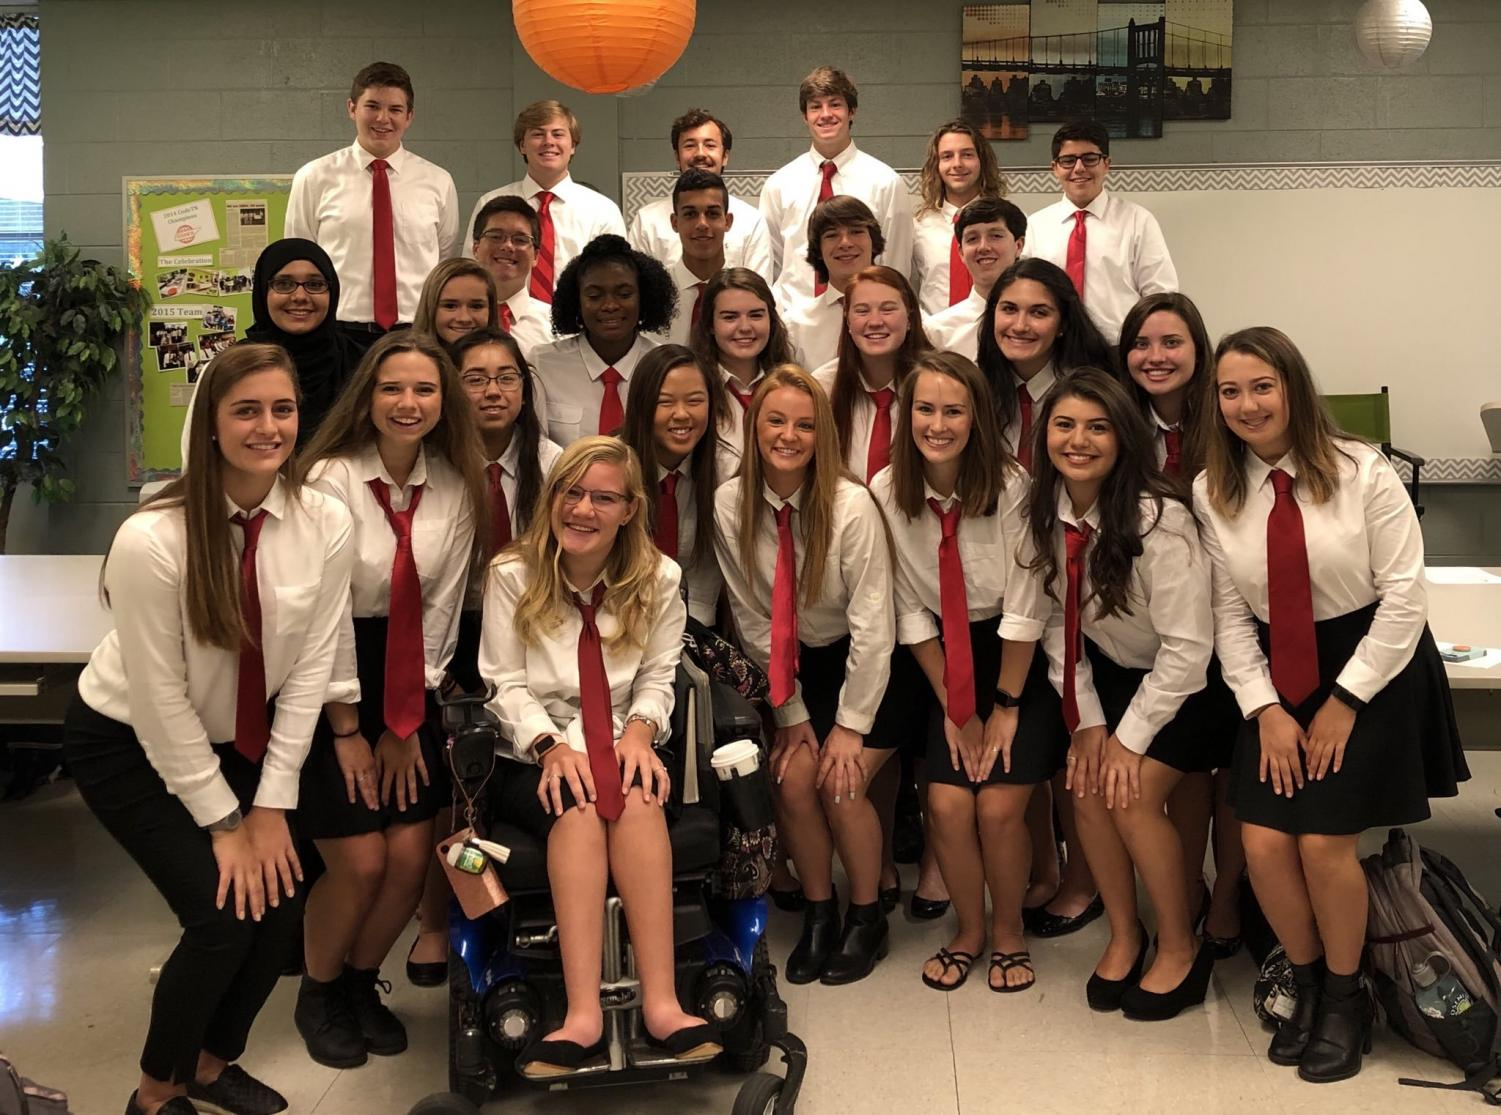 The Class of 2019 senior committee takes a group photo at a meeting earlier this year.